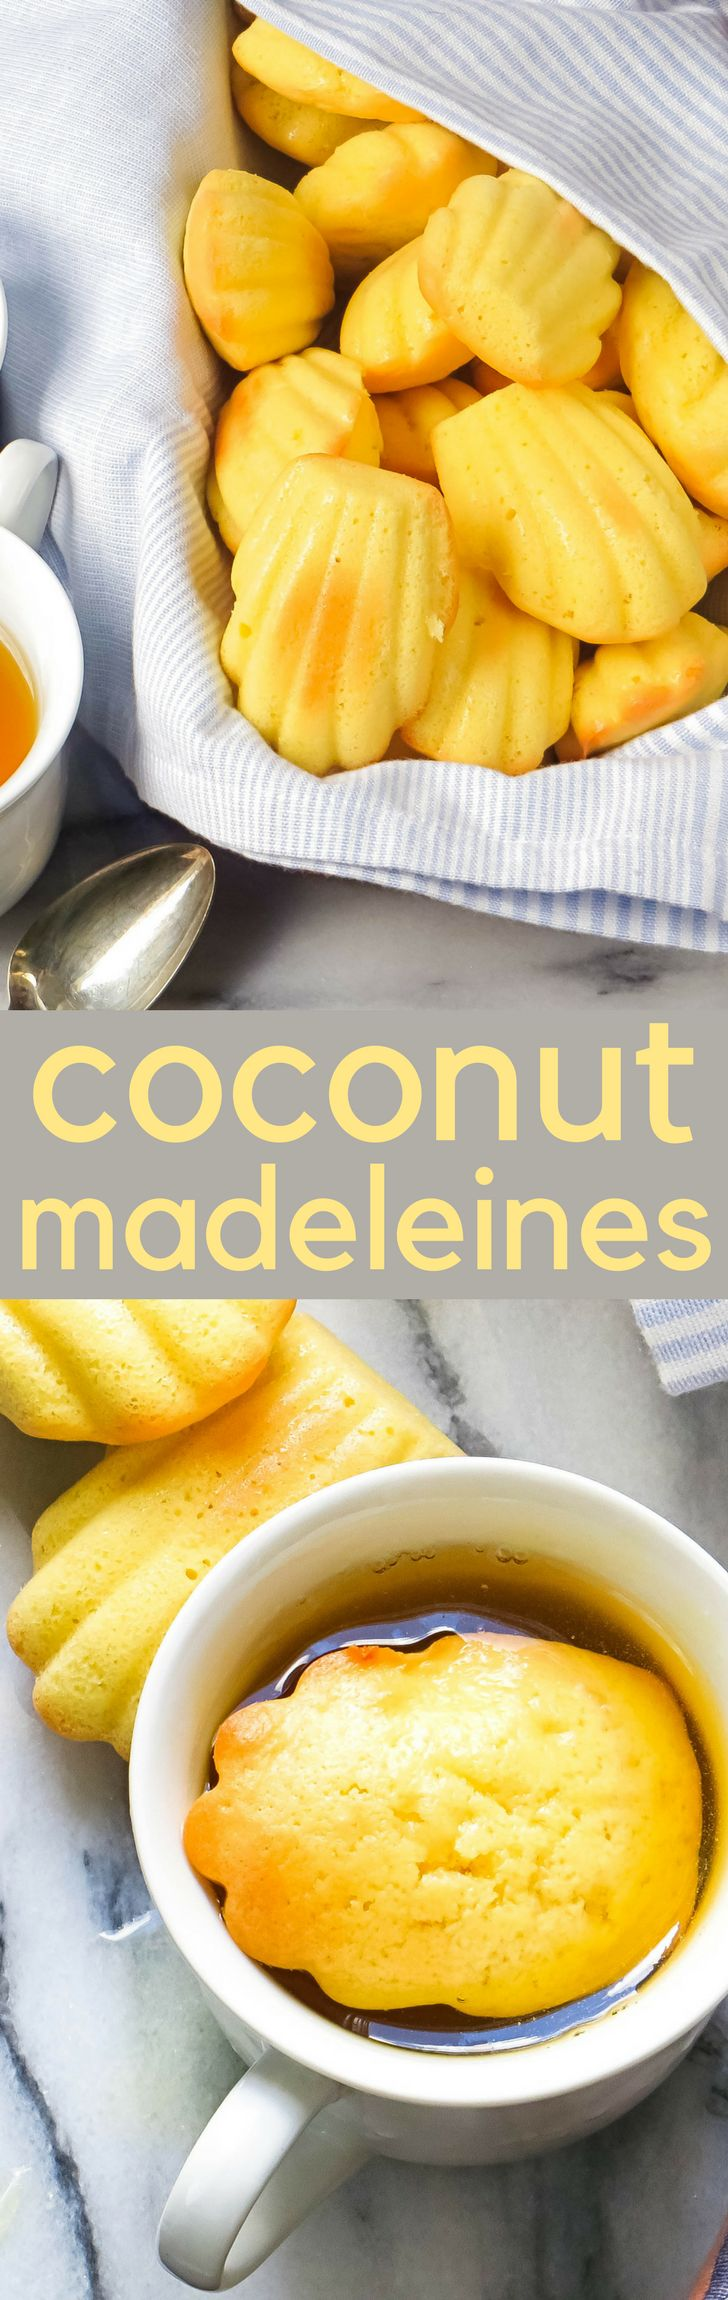 This authentic madeleine recipe is an easy to make snack. A cross between sponge cake and cookie coconut madeleines go great with tea! #cookies #christmascookies #madeleines #coconut